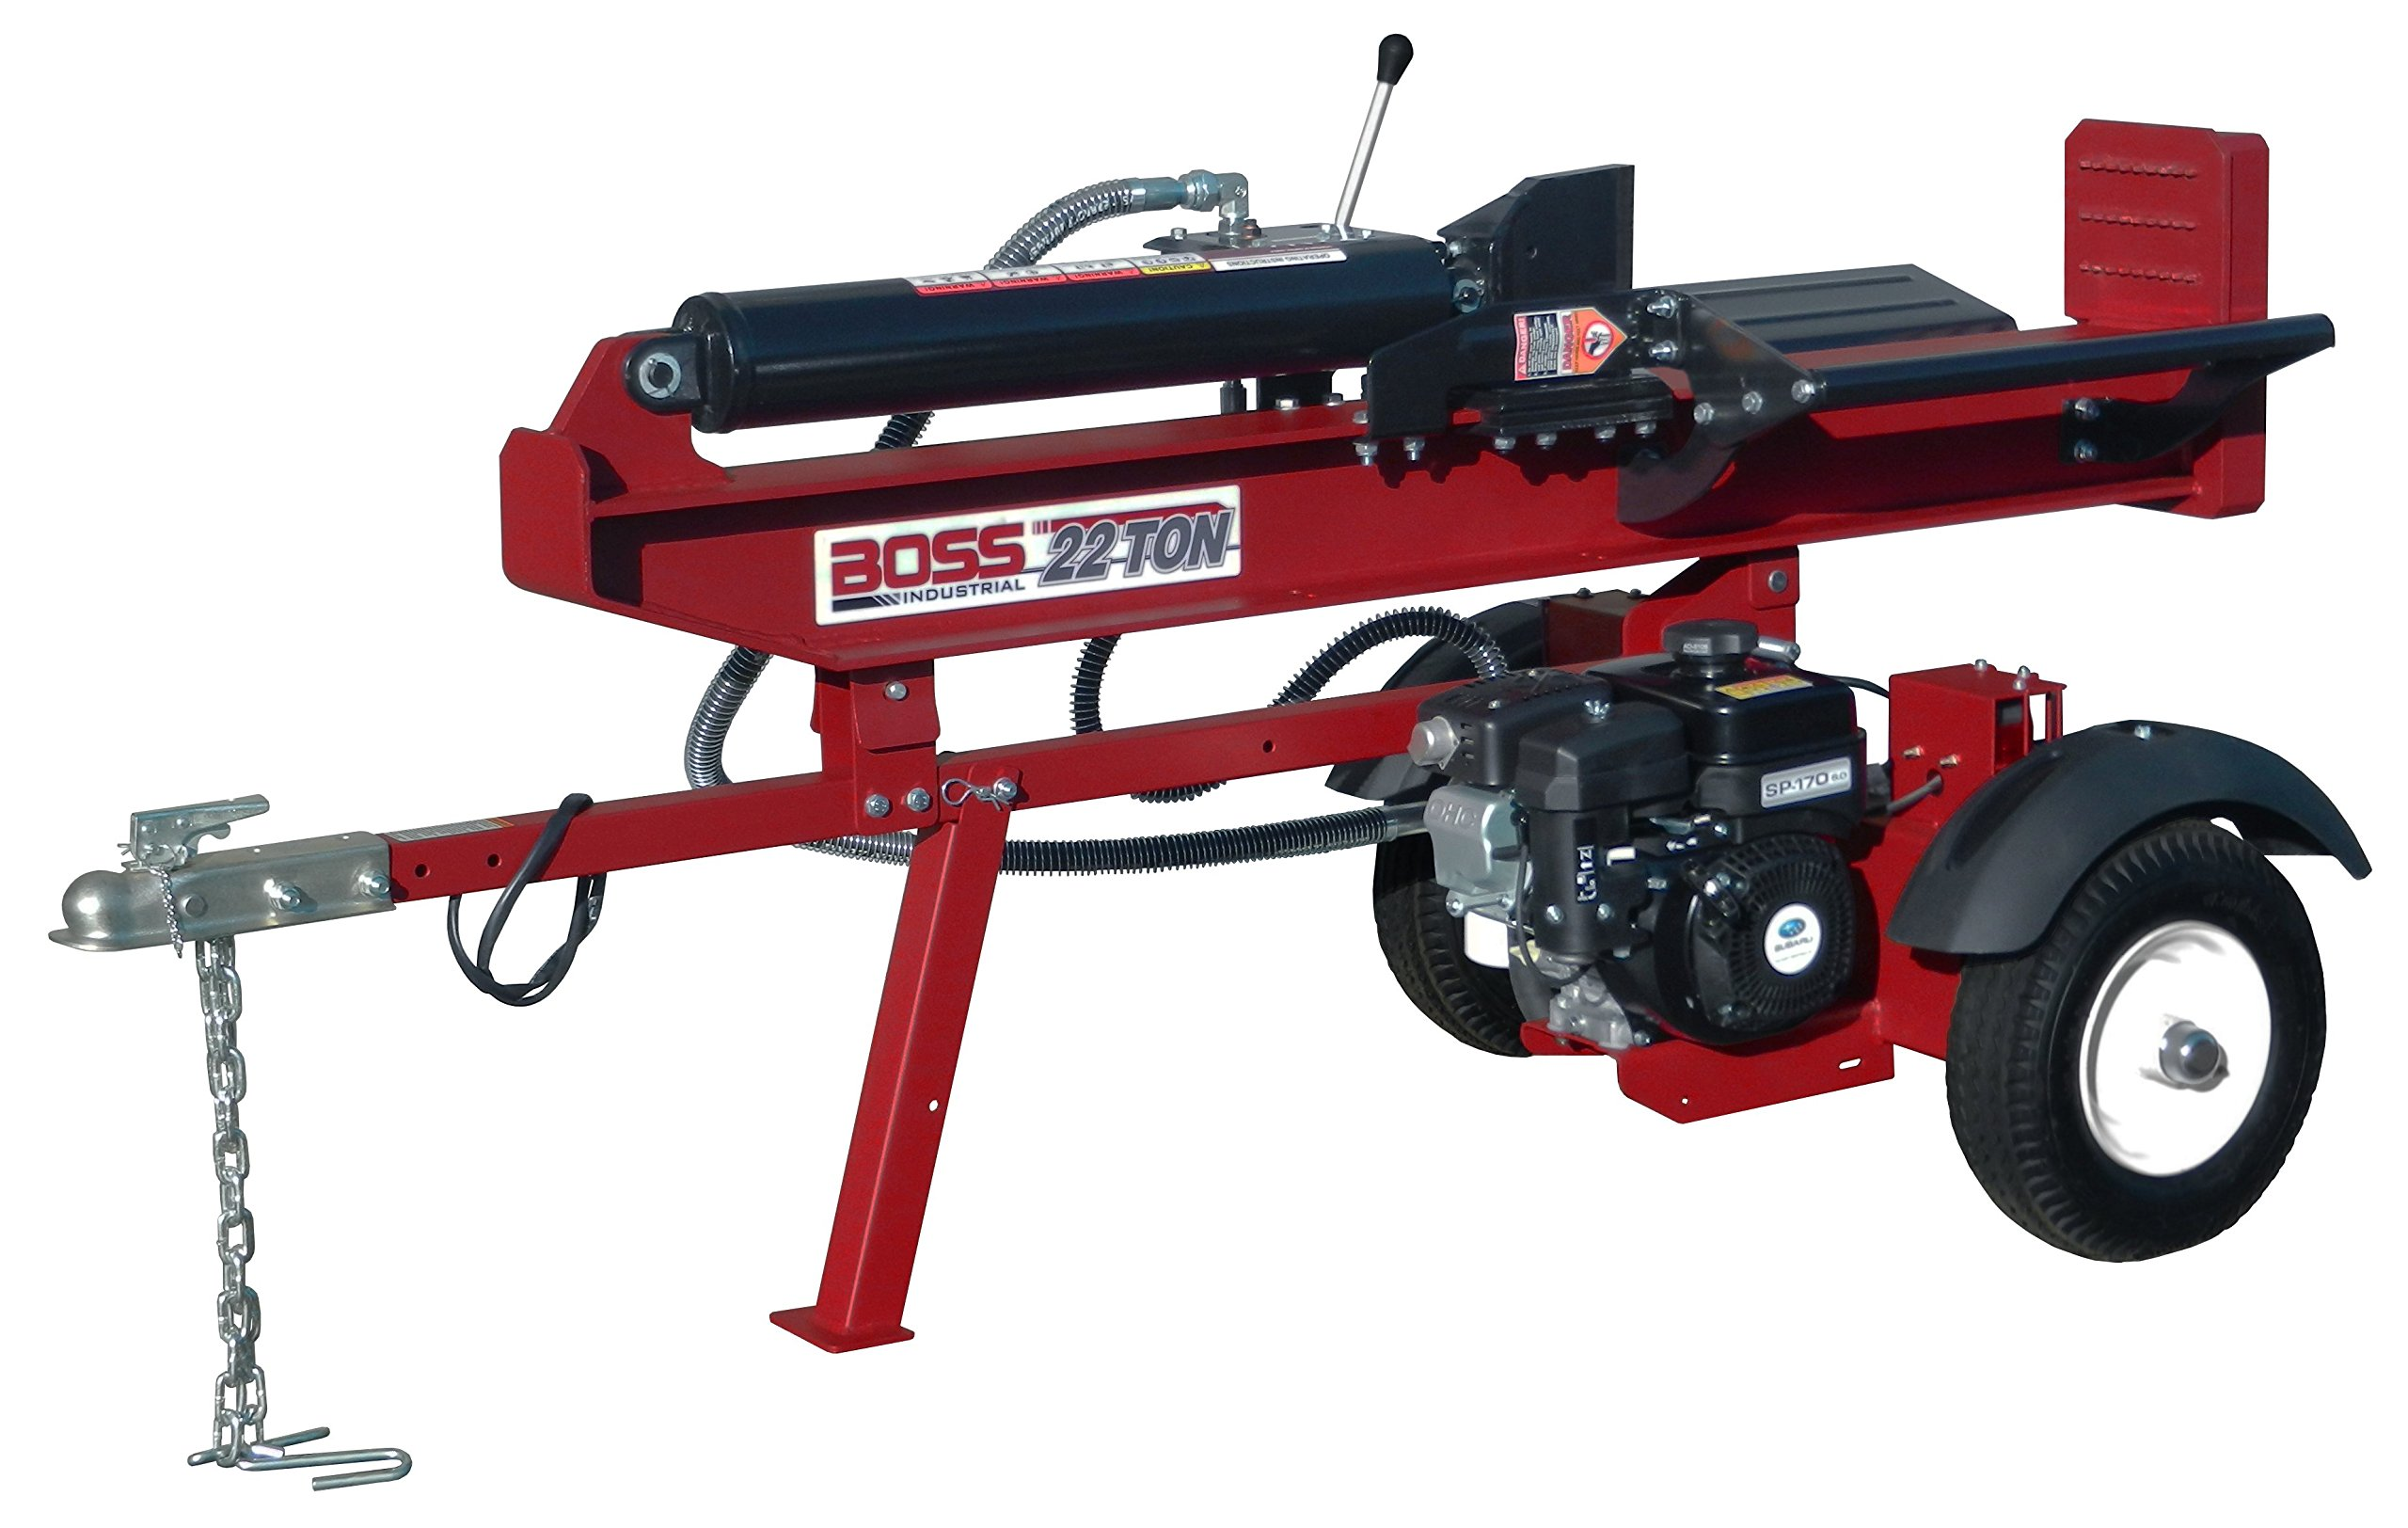 BOSS INDUSTRIAL GB22T25L Horizontal/Vertical Gas Log Splitter with Rear Lights, 22 Ton by Boss Industrial